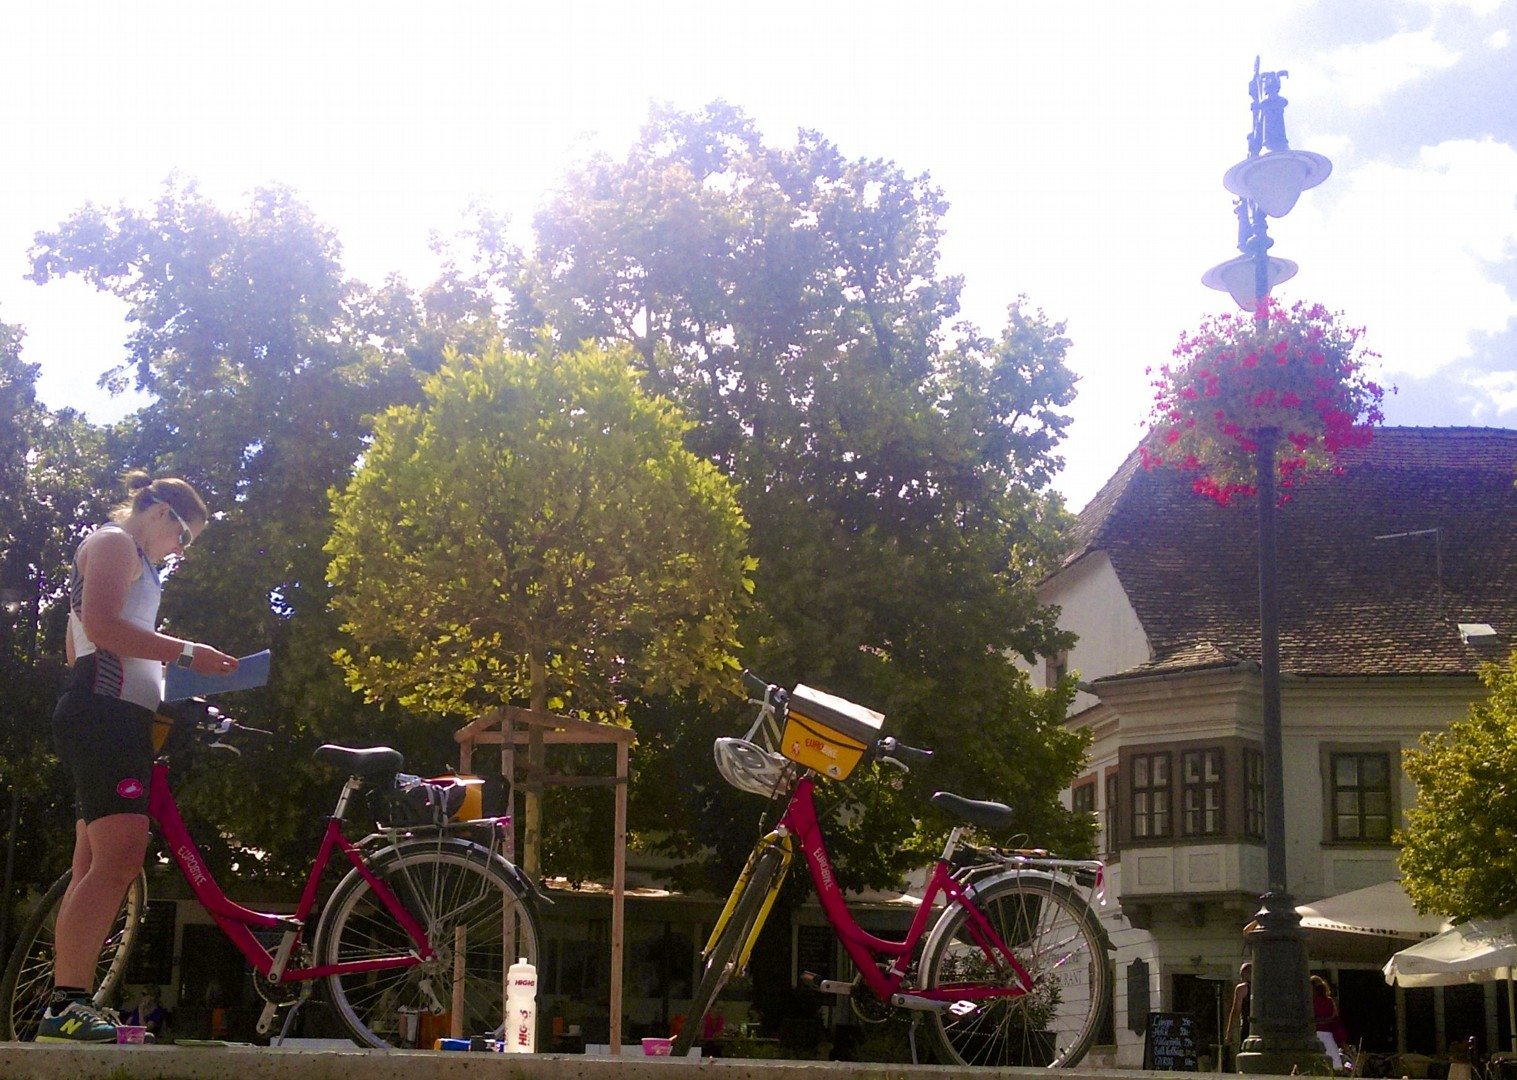 leisure-cycling-holiday-danube-town.jpg - Austria, Slovakia and Hungary - Vienna to Budapest - Self-Guided Family Cycling Holiday - Family Cycling